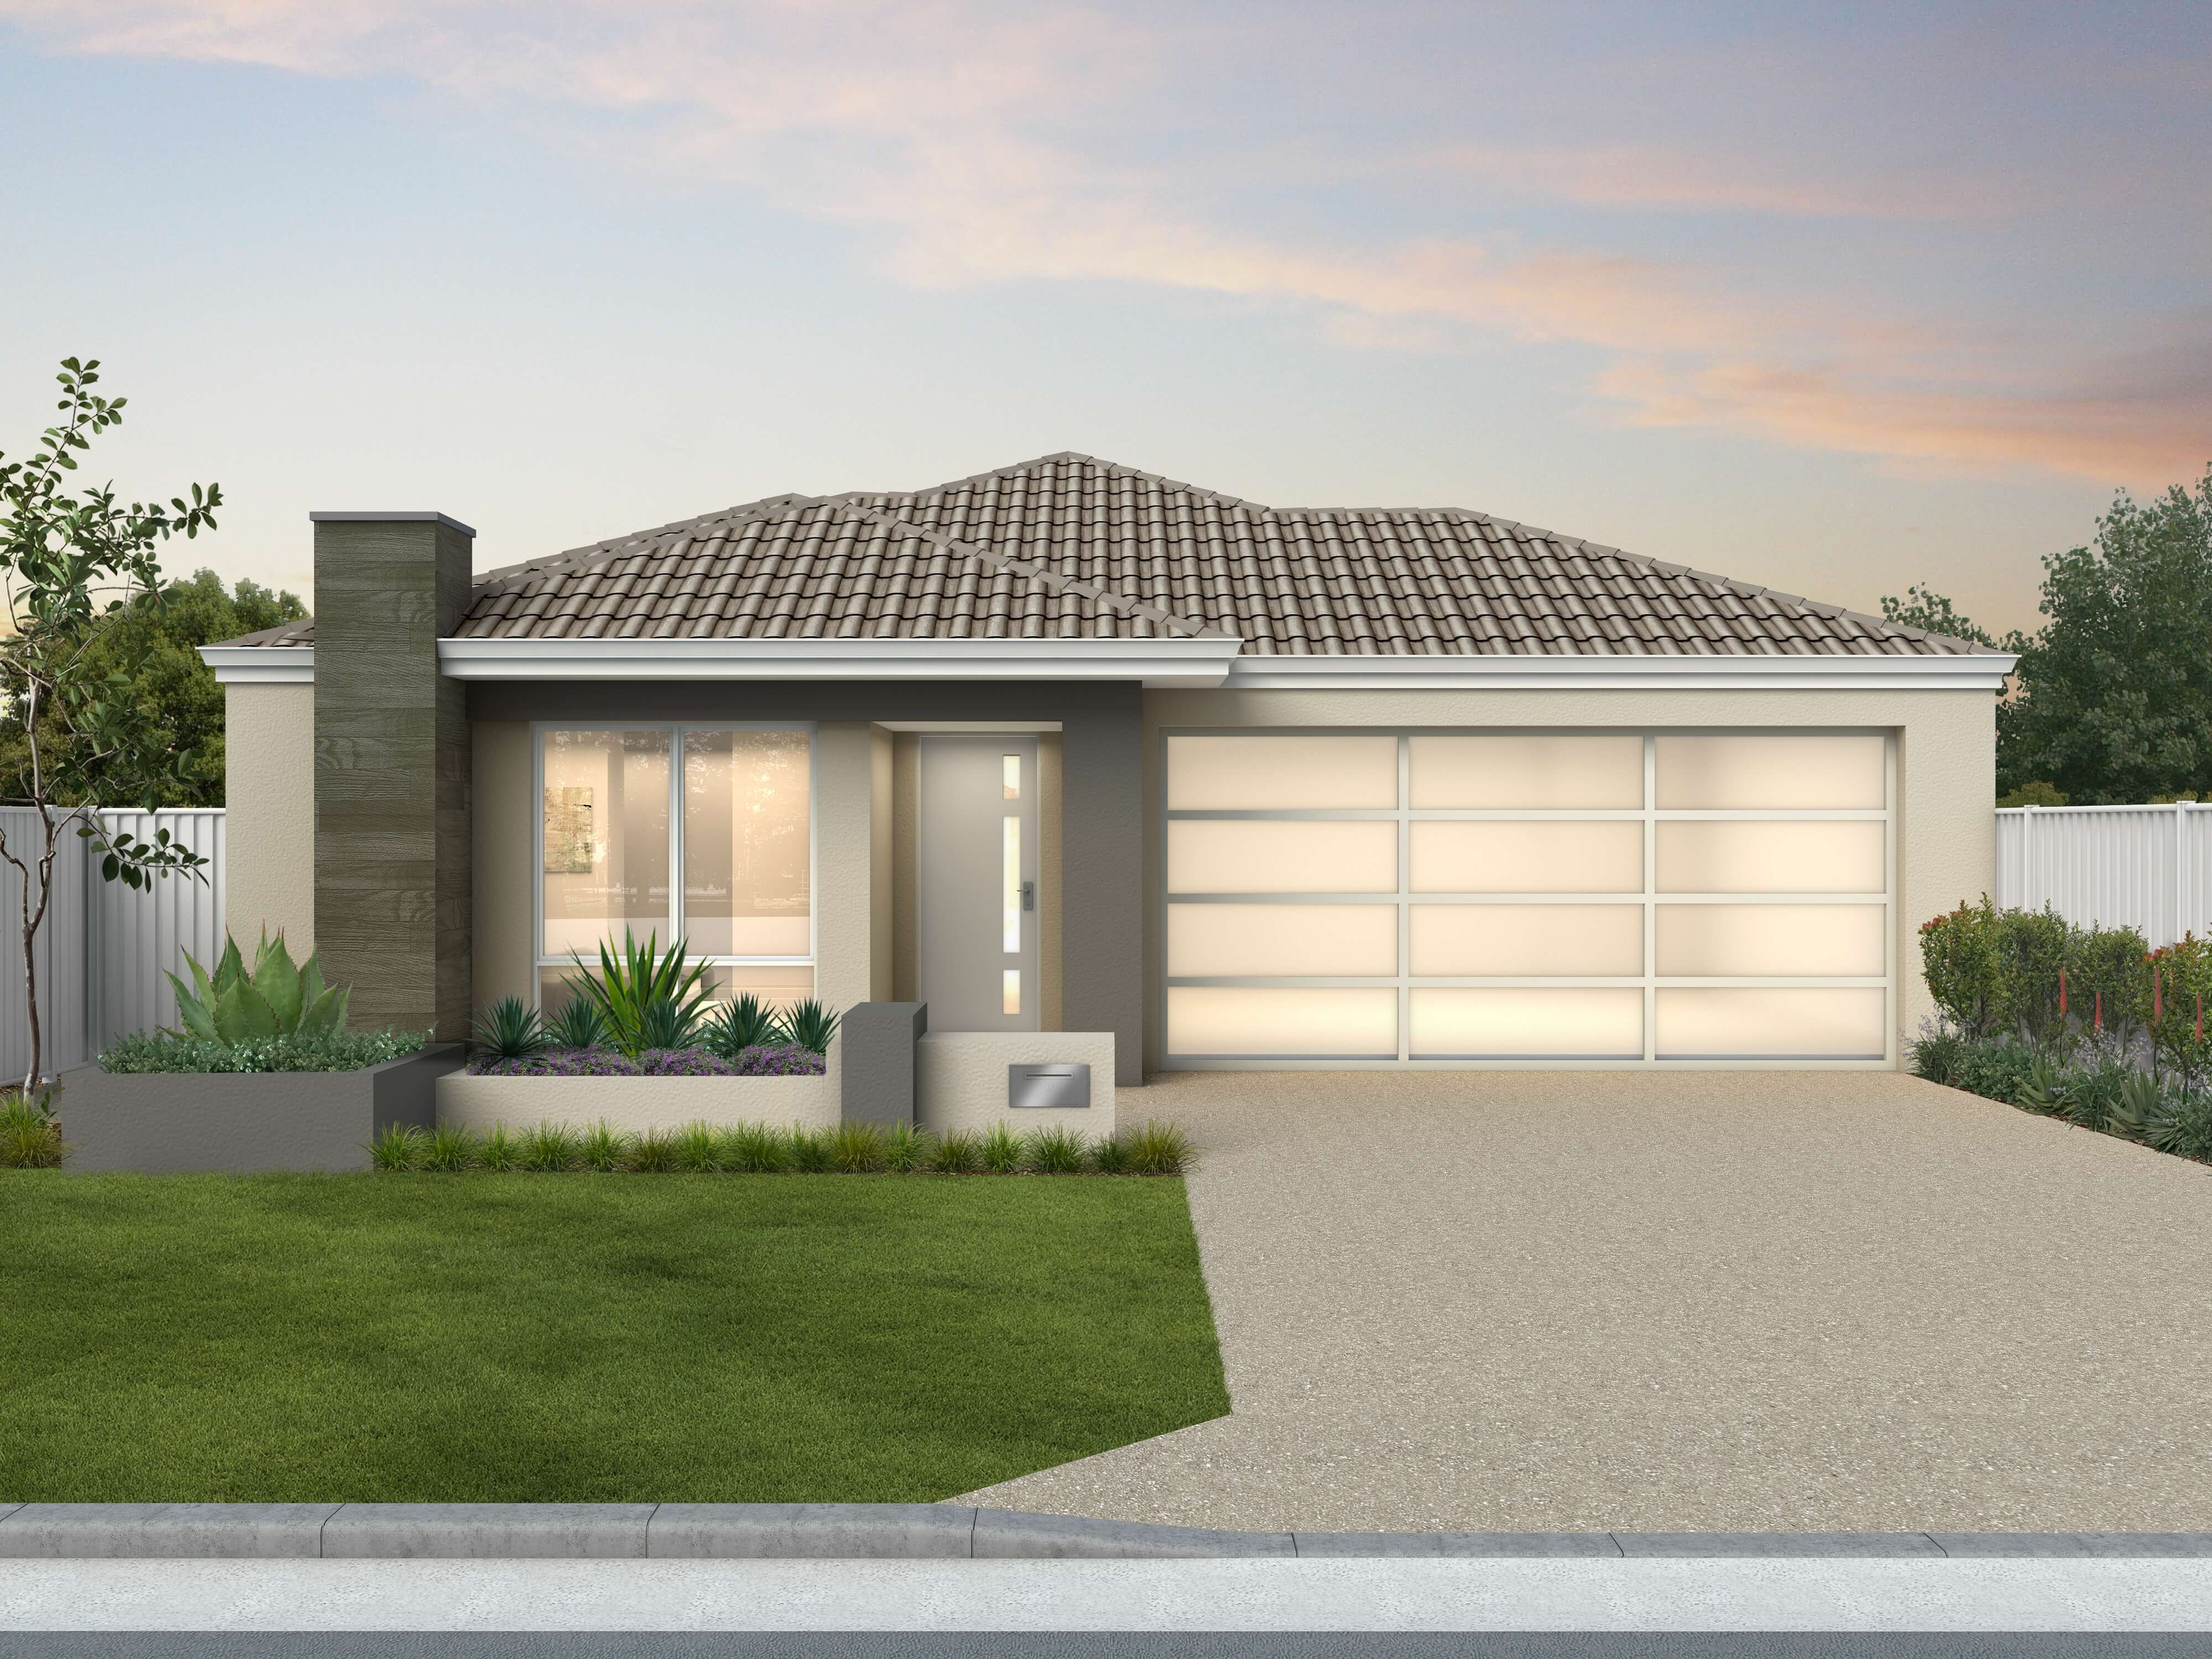 The Acacia, a new home design by Move Homes for Perth families and first time home buyers